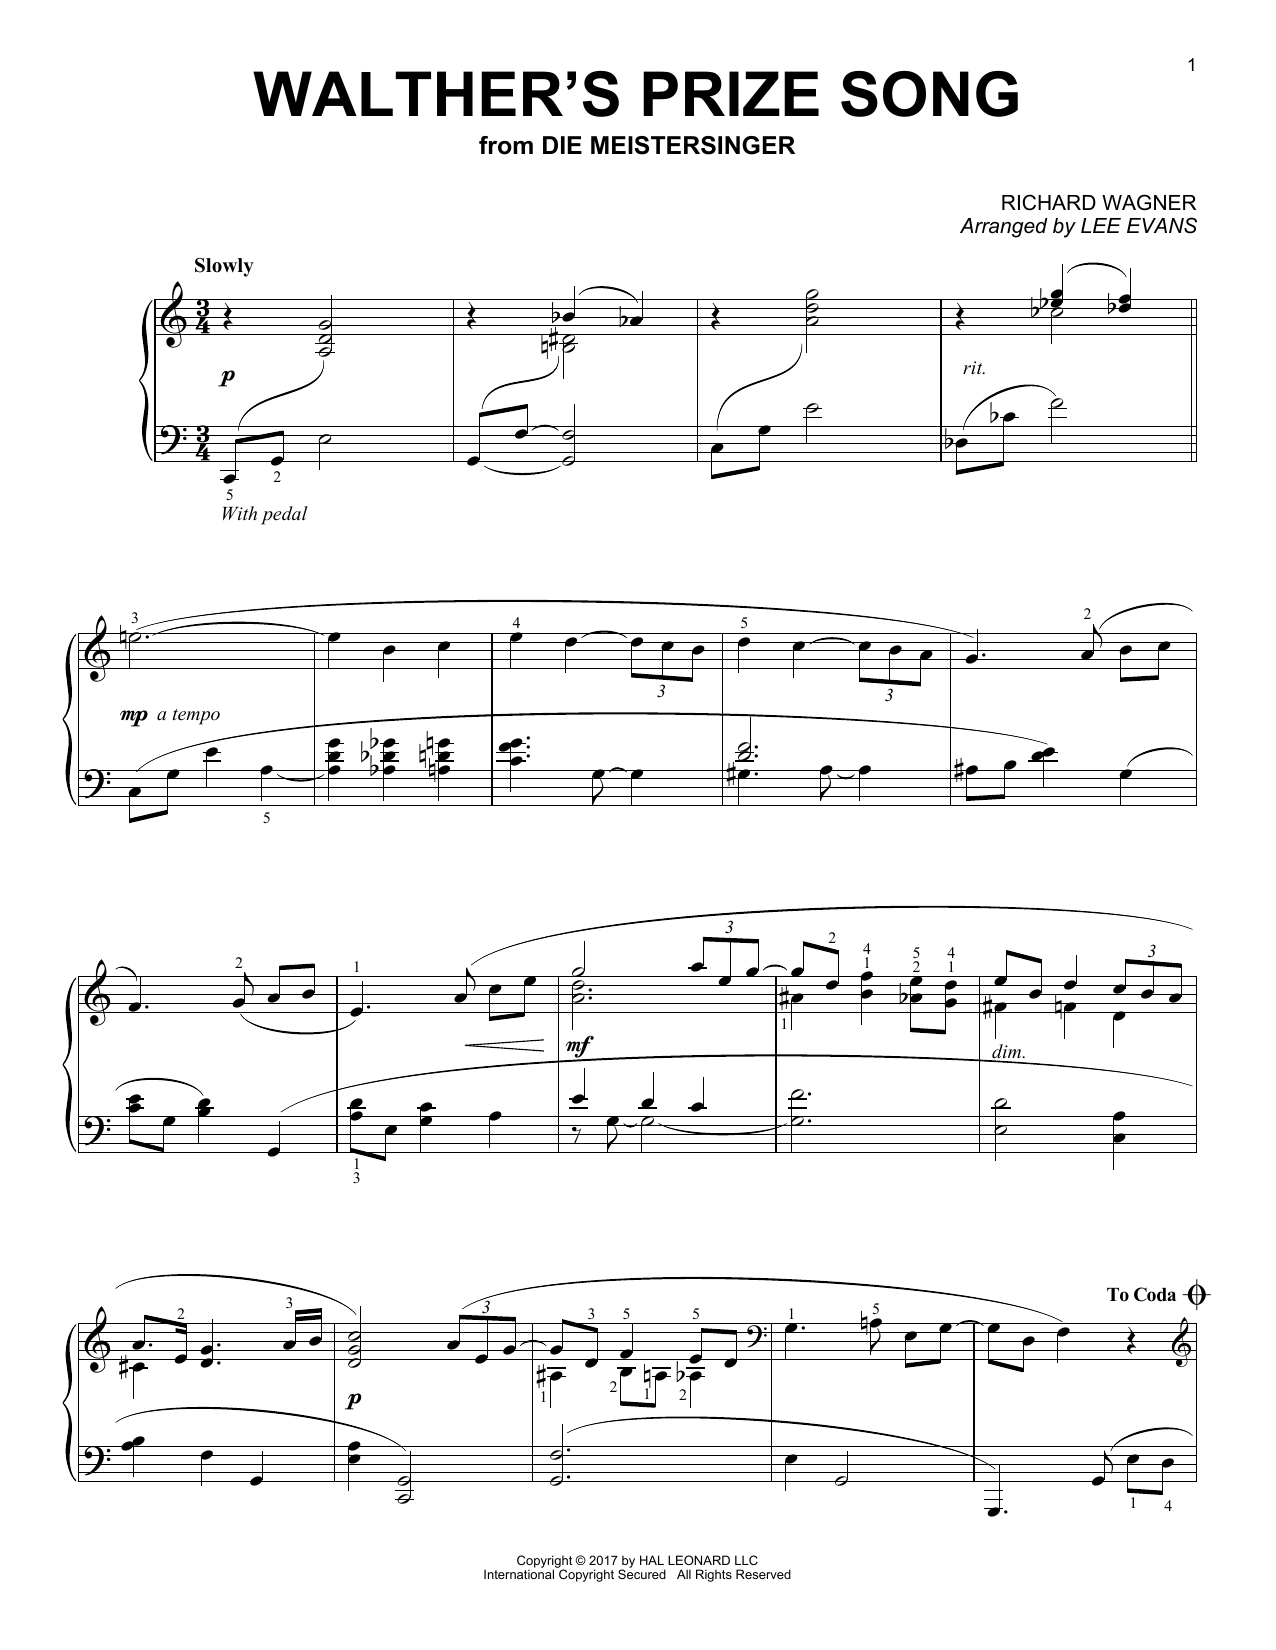 Lee Evans Walther's Prize Song sheet music notes and chords